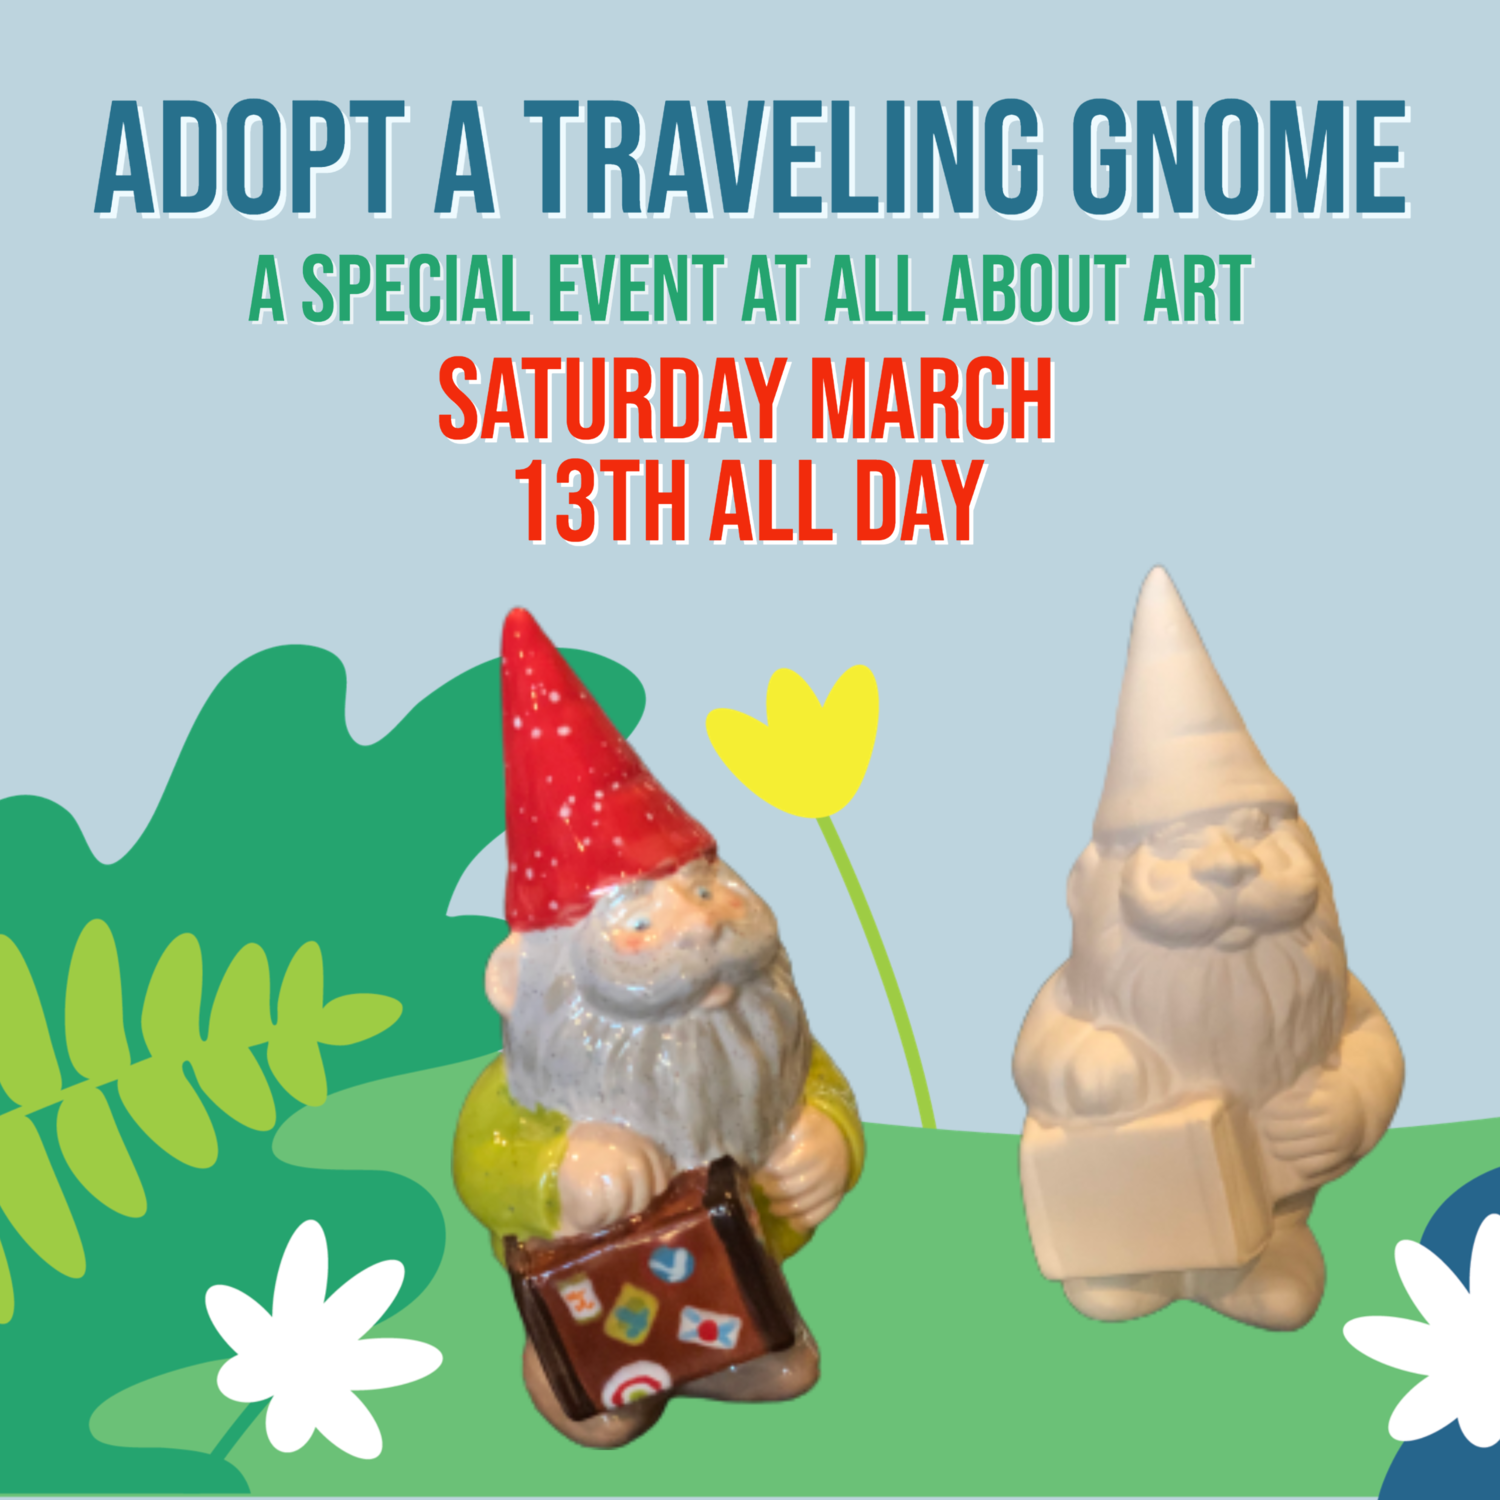 Adopt a Traveling Gnome Specail Event